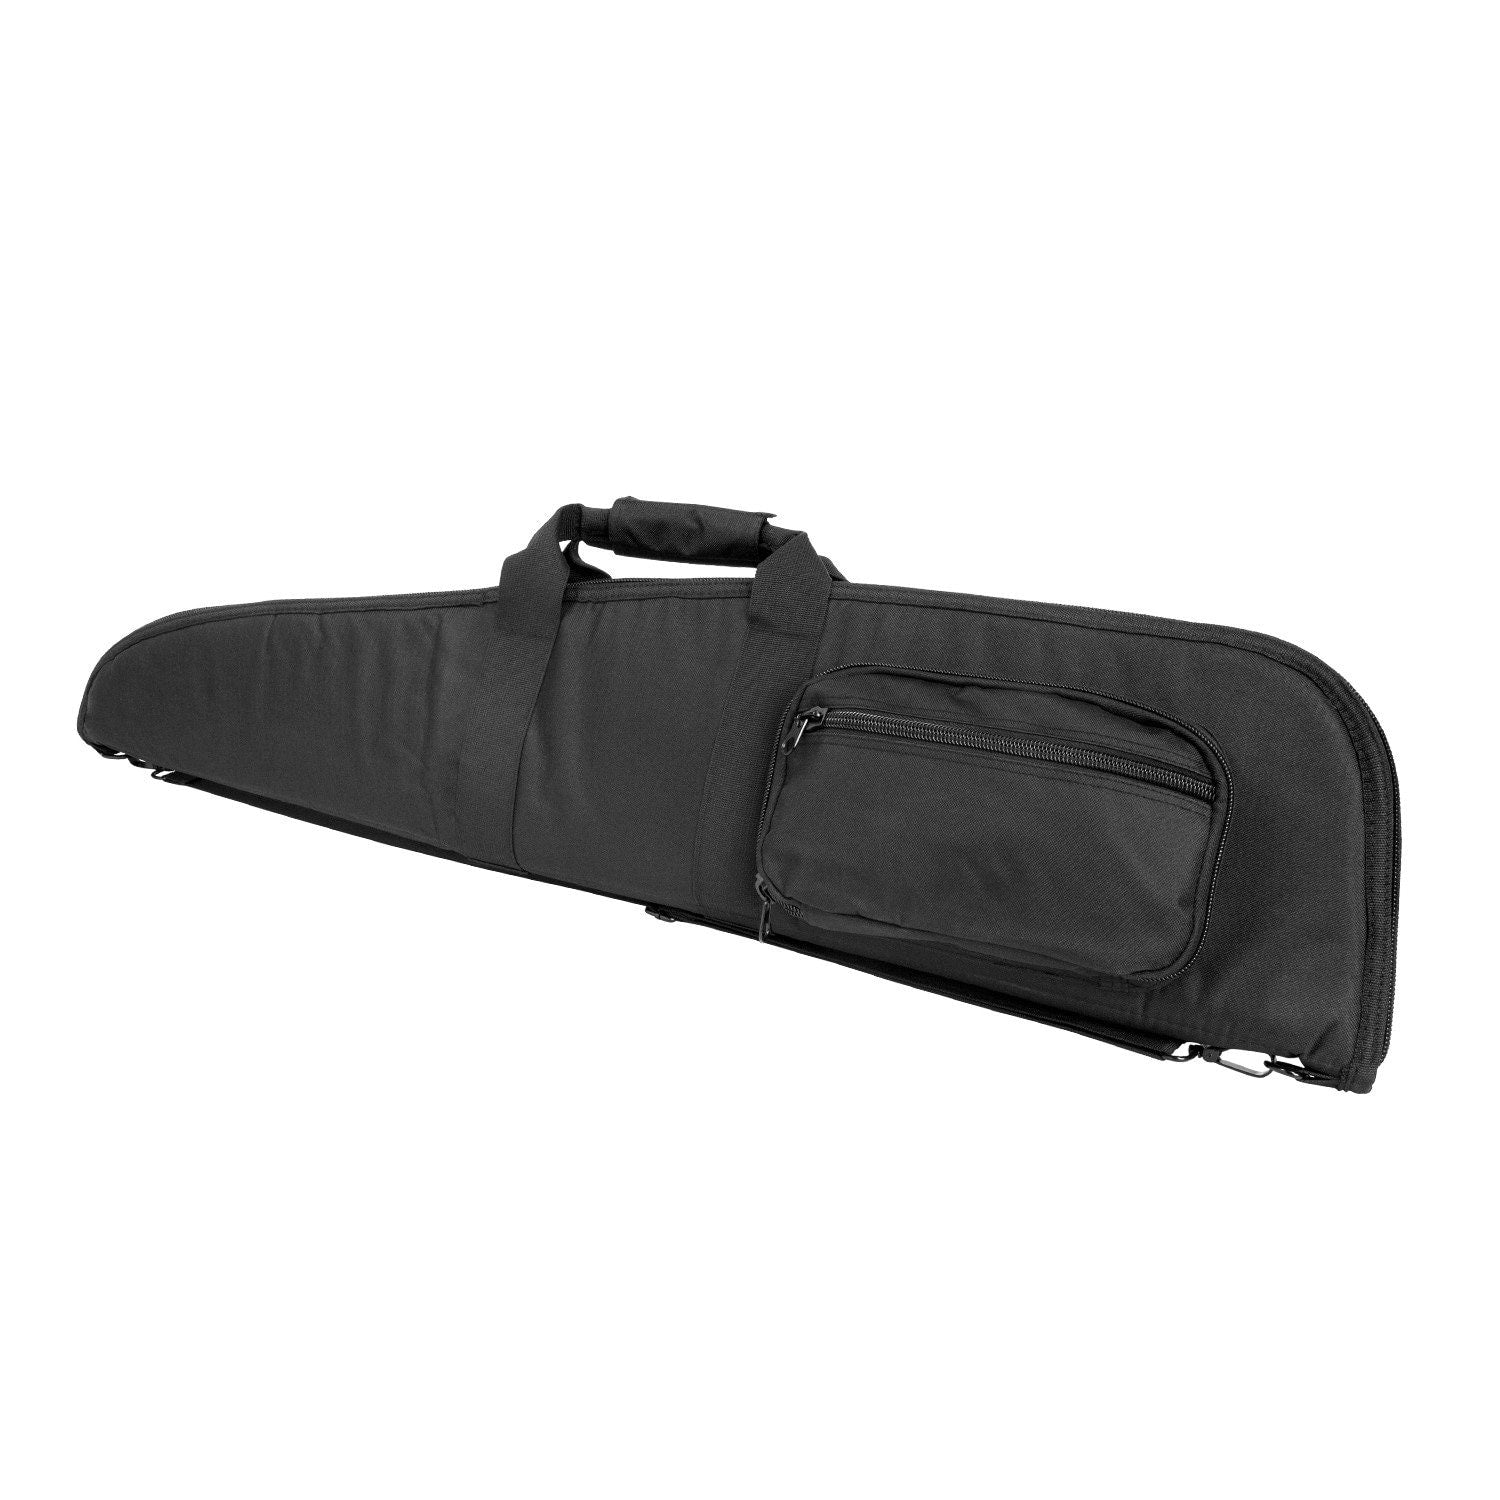 Gun Case (36 Inch X 9 Inch) - Black - Rifle/carbine Cases - Vism - Colonel Mustard